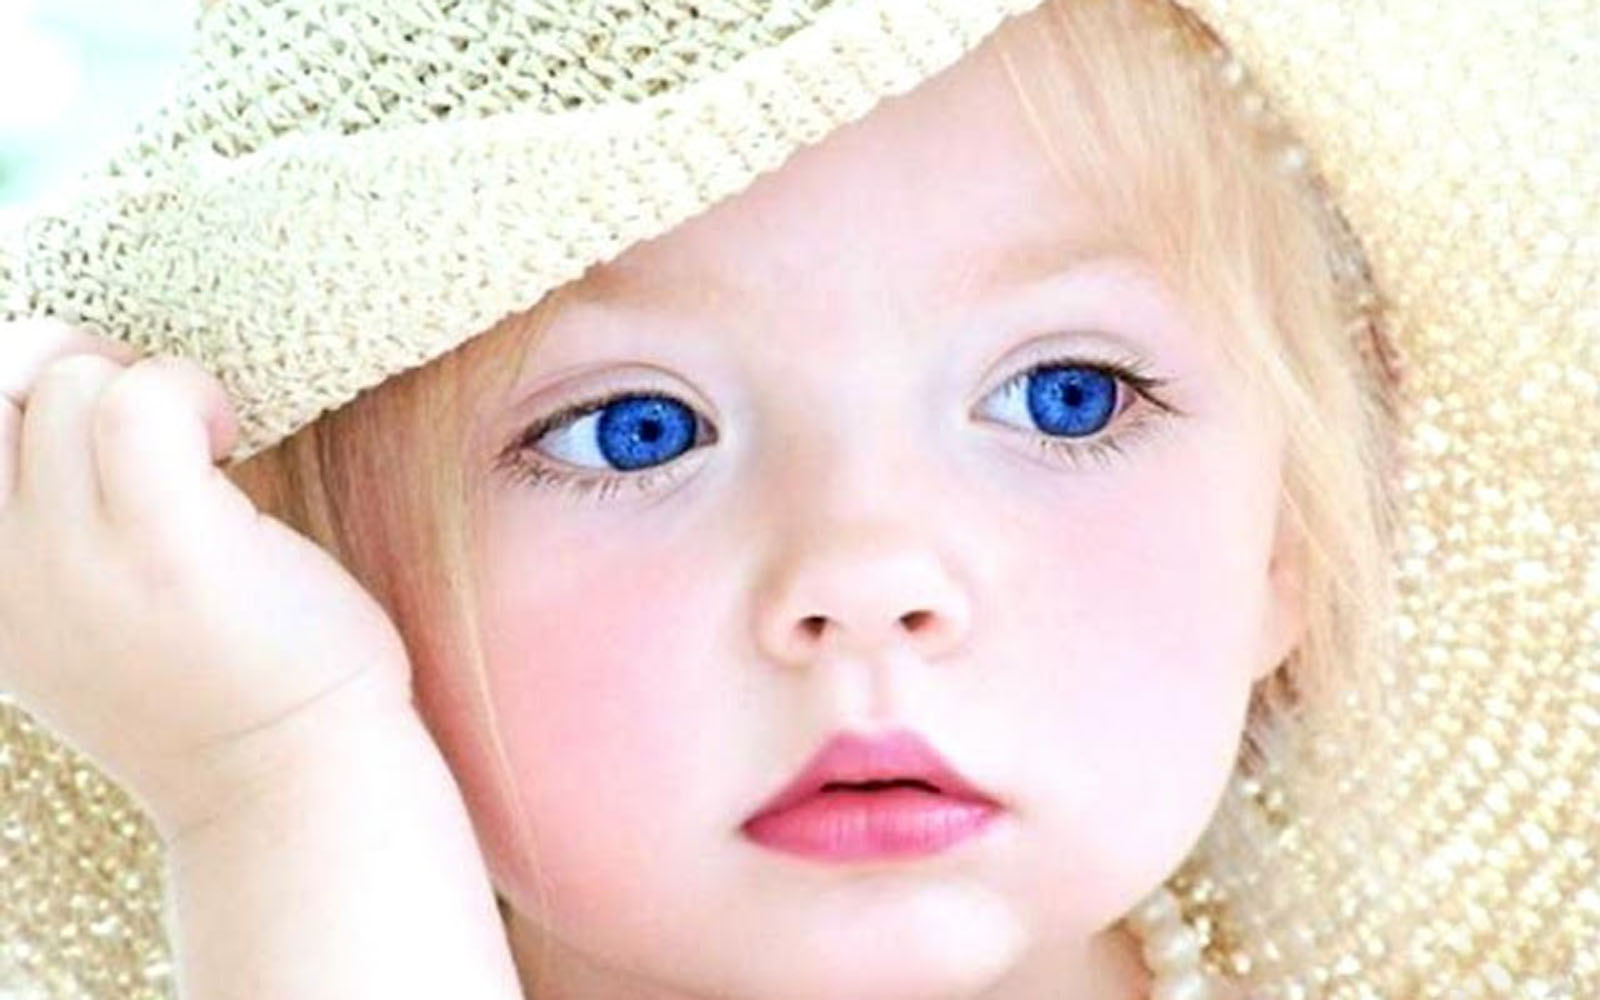 Cute Baby Girl Pictures Wallpapers: Wallpaper: Cute Babies Hd Wallpapers